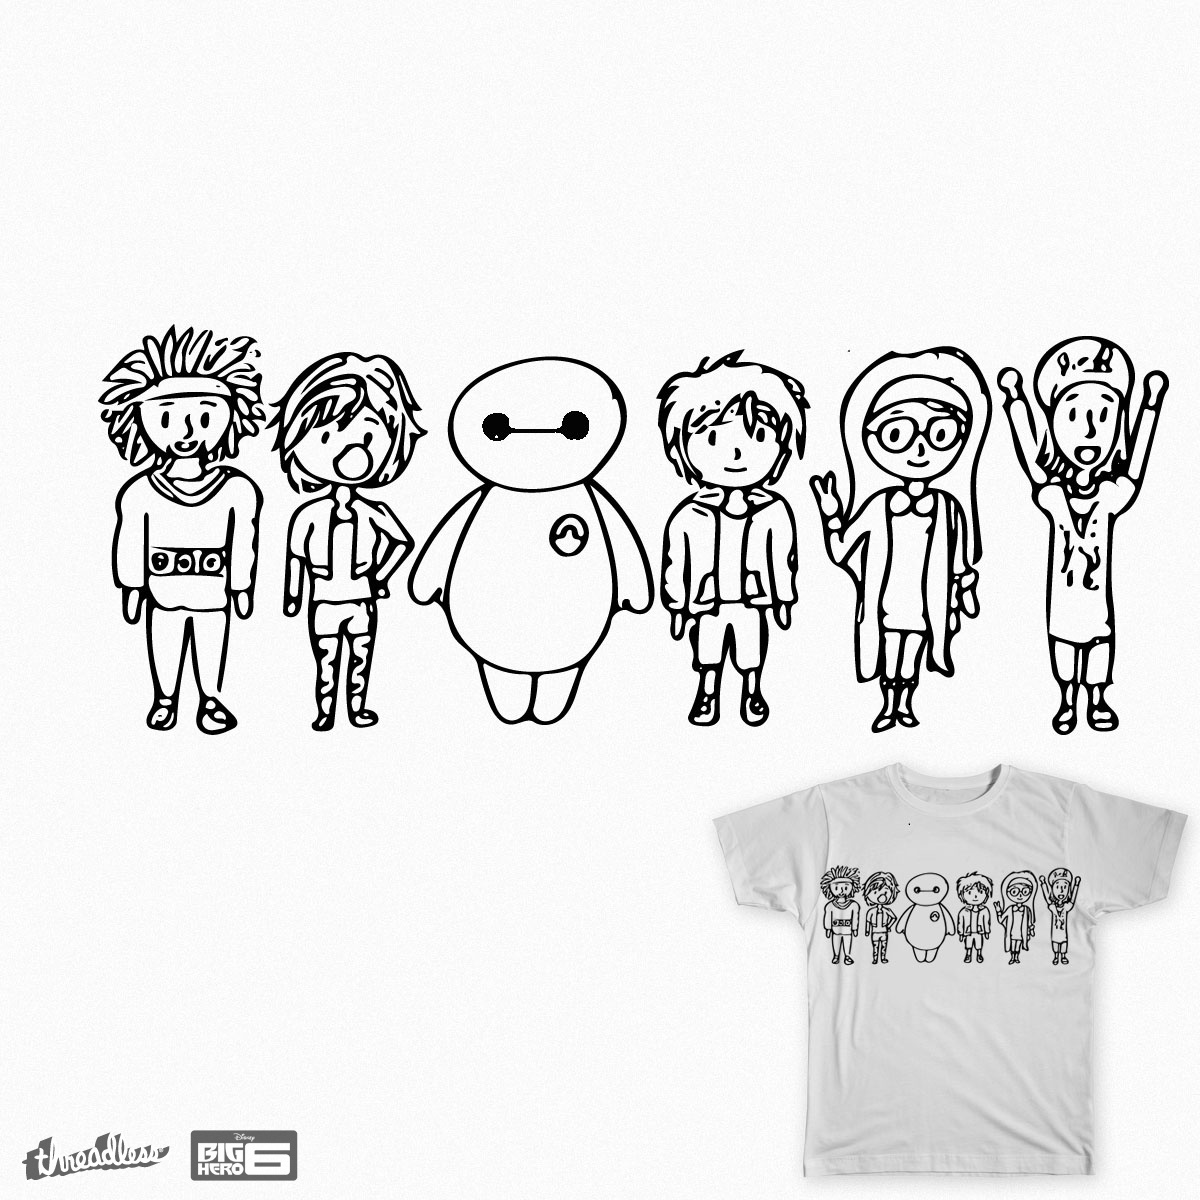 1200x1200 Score Big Hero 6 Chibi Style By C Ave On Threadless